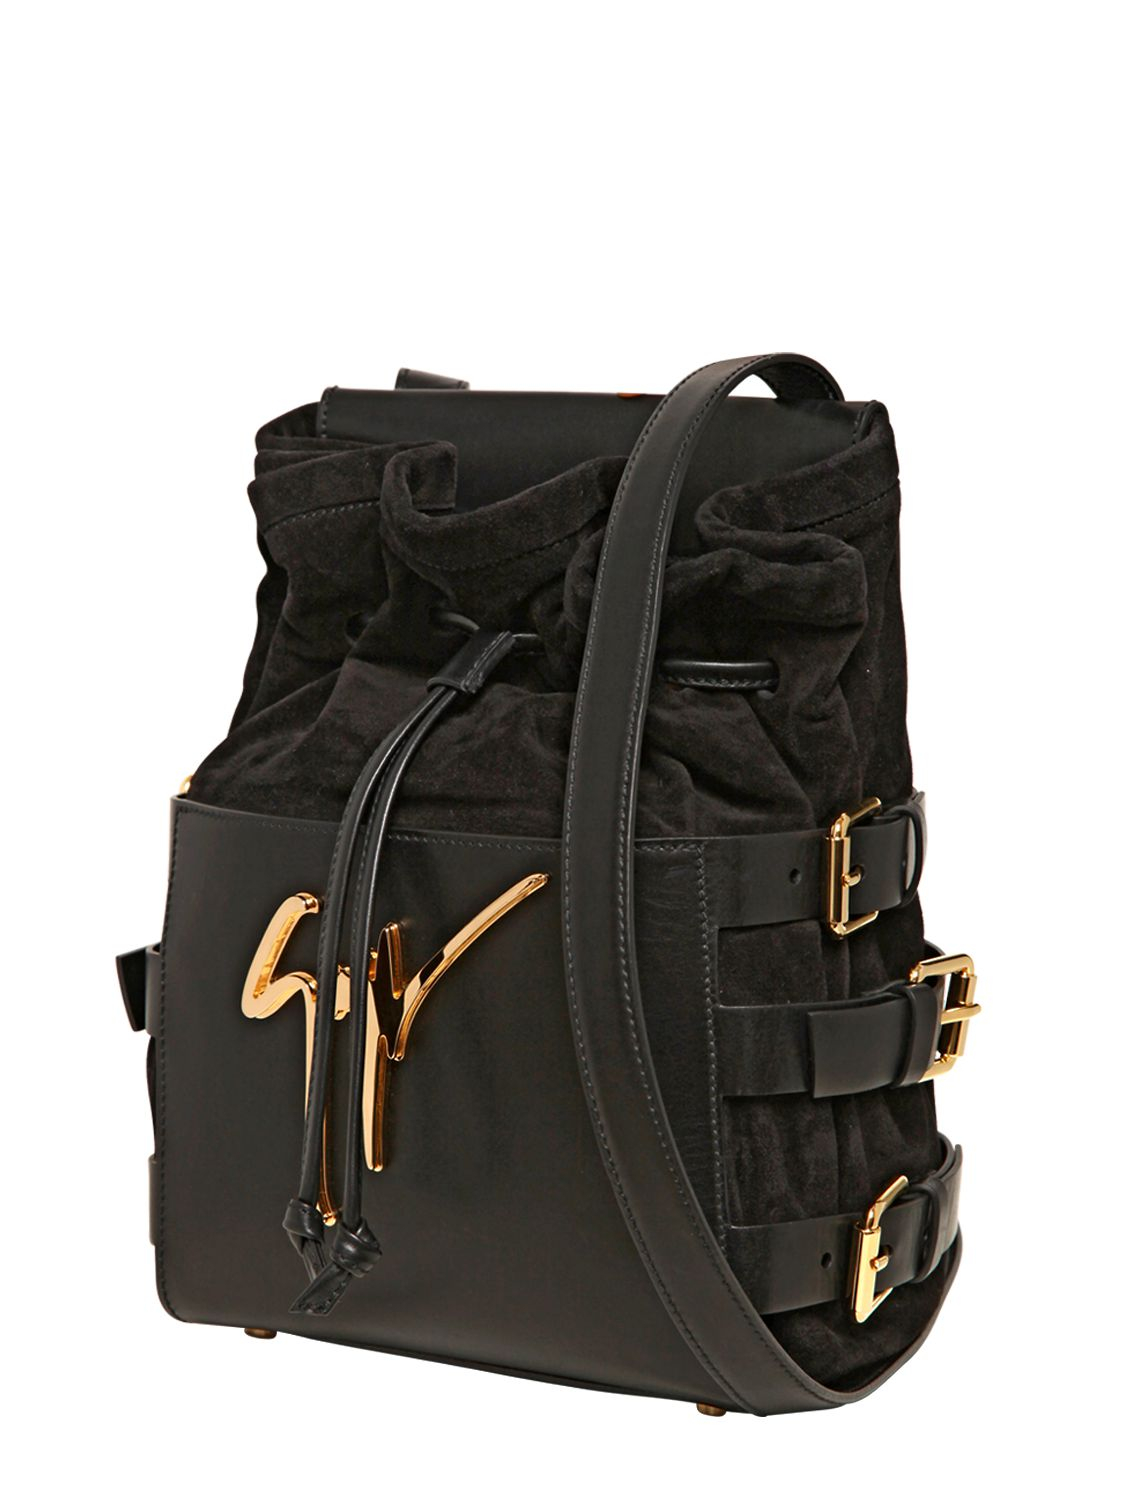 Giuseppe Zanotti Side Buckled Suede Nappa Leather Bag In